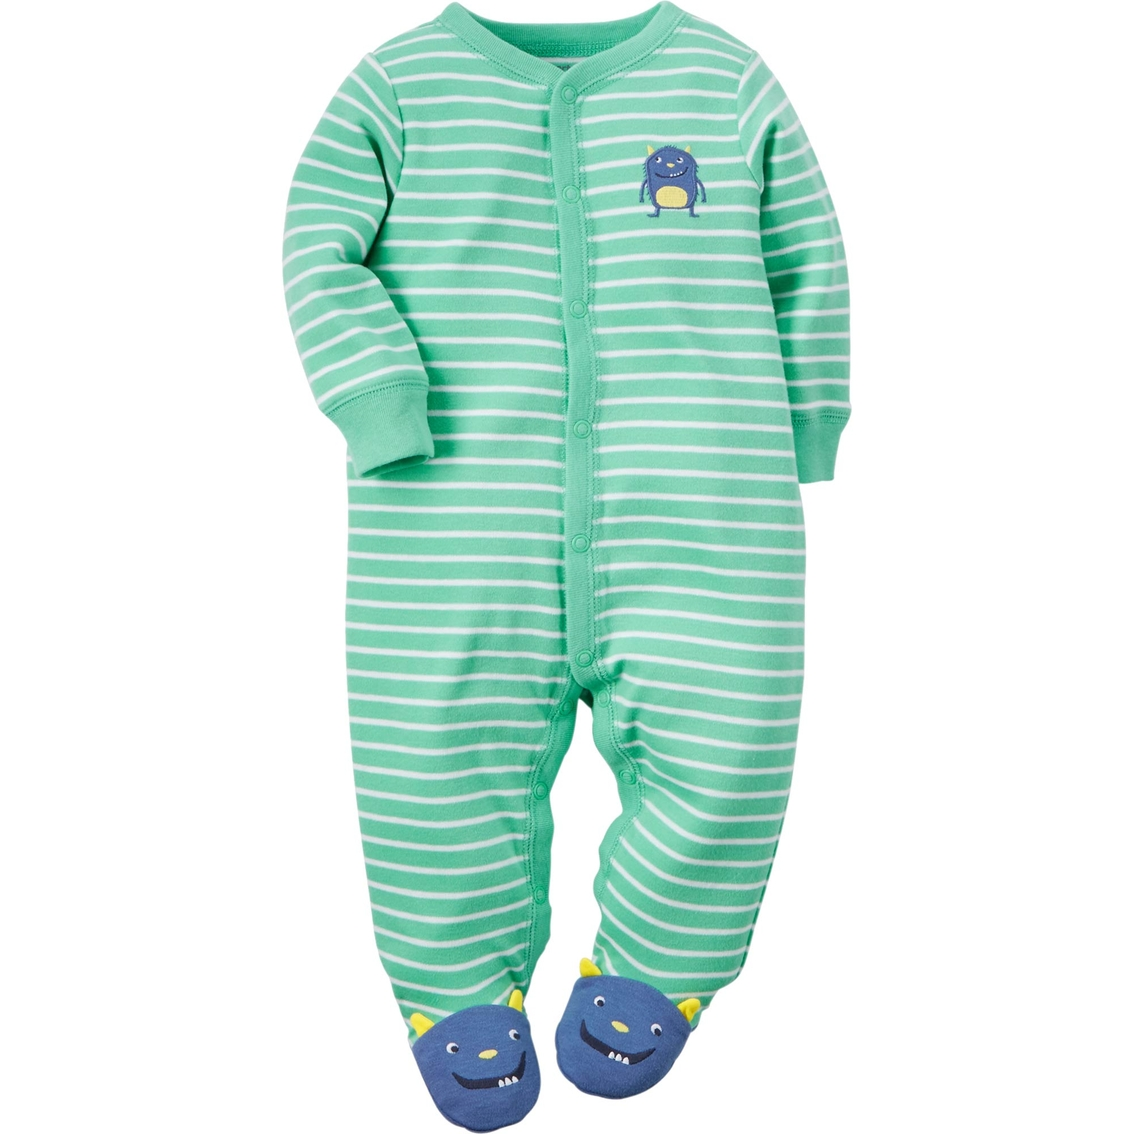 4a96cee10 Carter s Infant Boys Turquoise Monster Sleep And Play